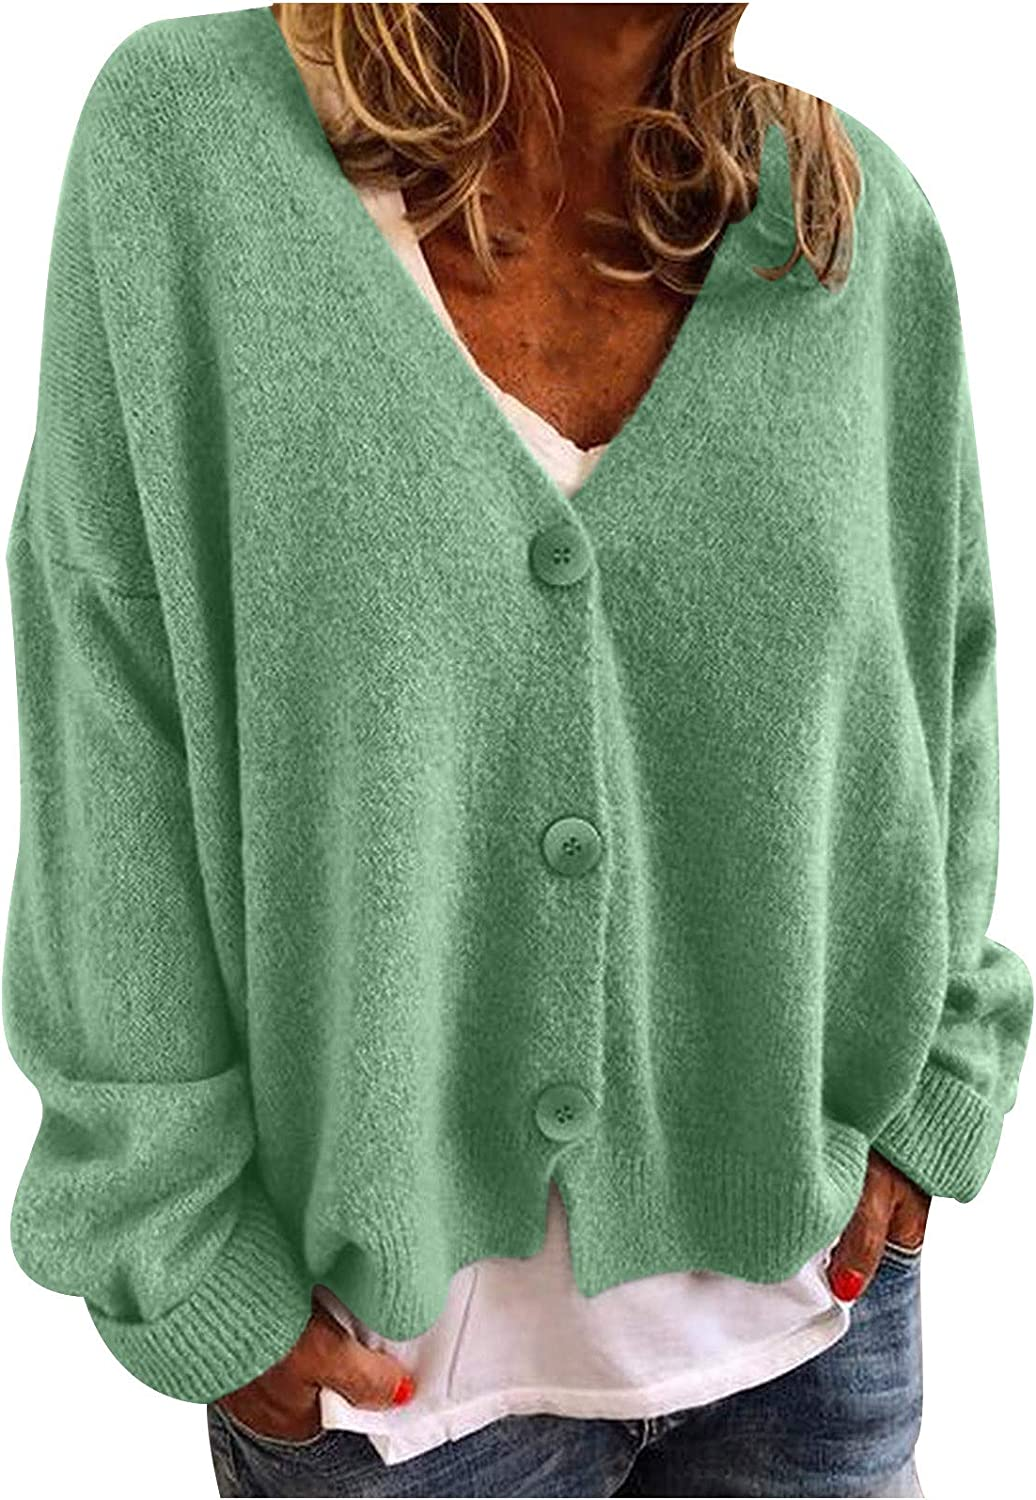 VEKDONE Womens Casual Long Sleeve Open Front Buttons Cable Knit Pocket Sweater Cardigan Jackets Plus Size